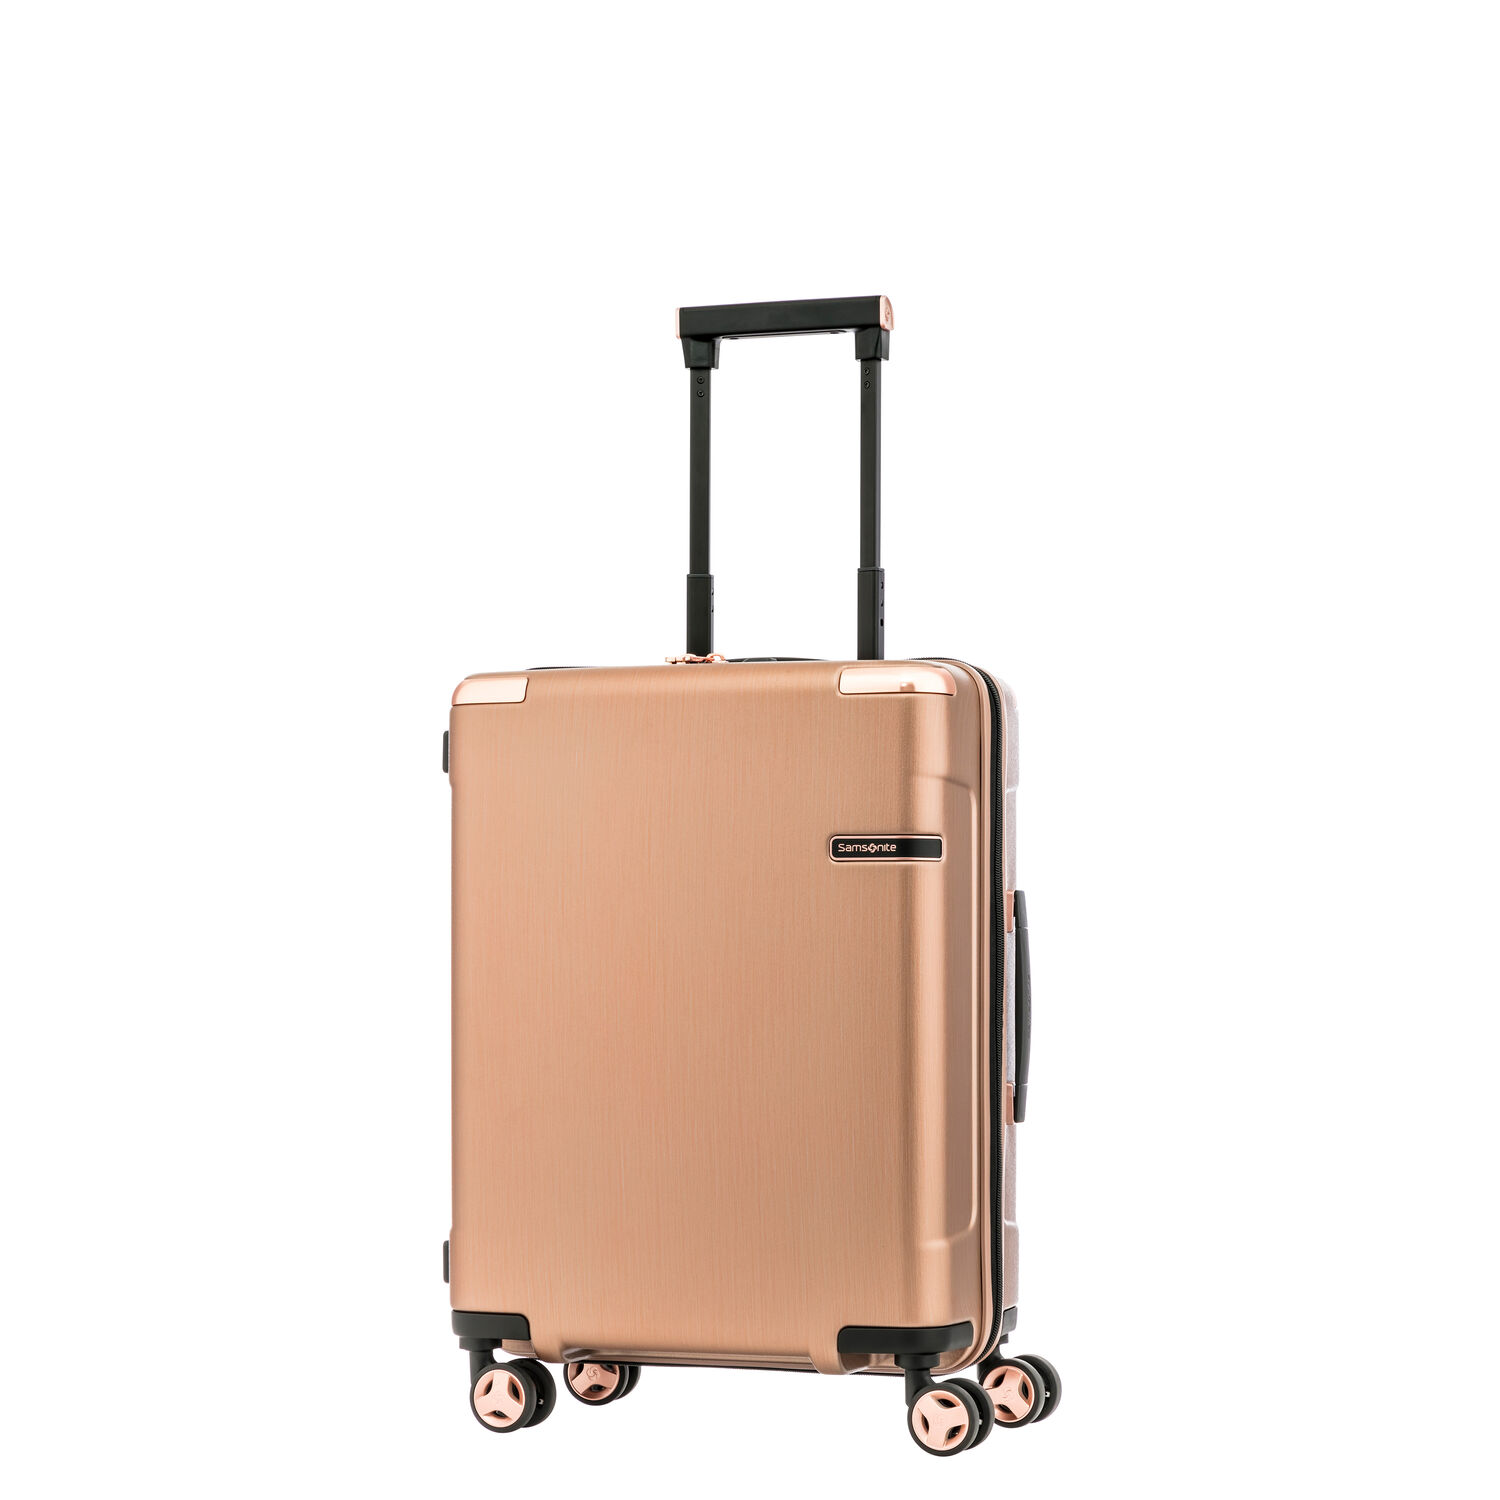 Samsonite Evoa Spinner Carry-On in the color Rose Gold.